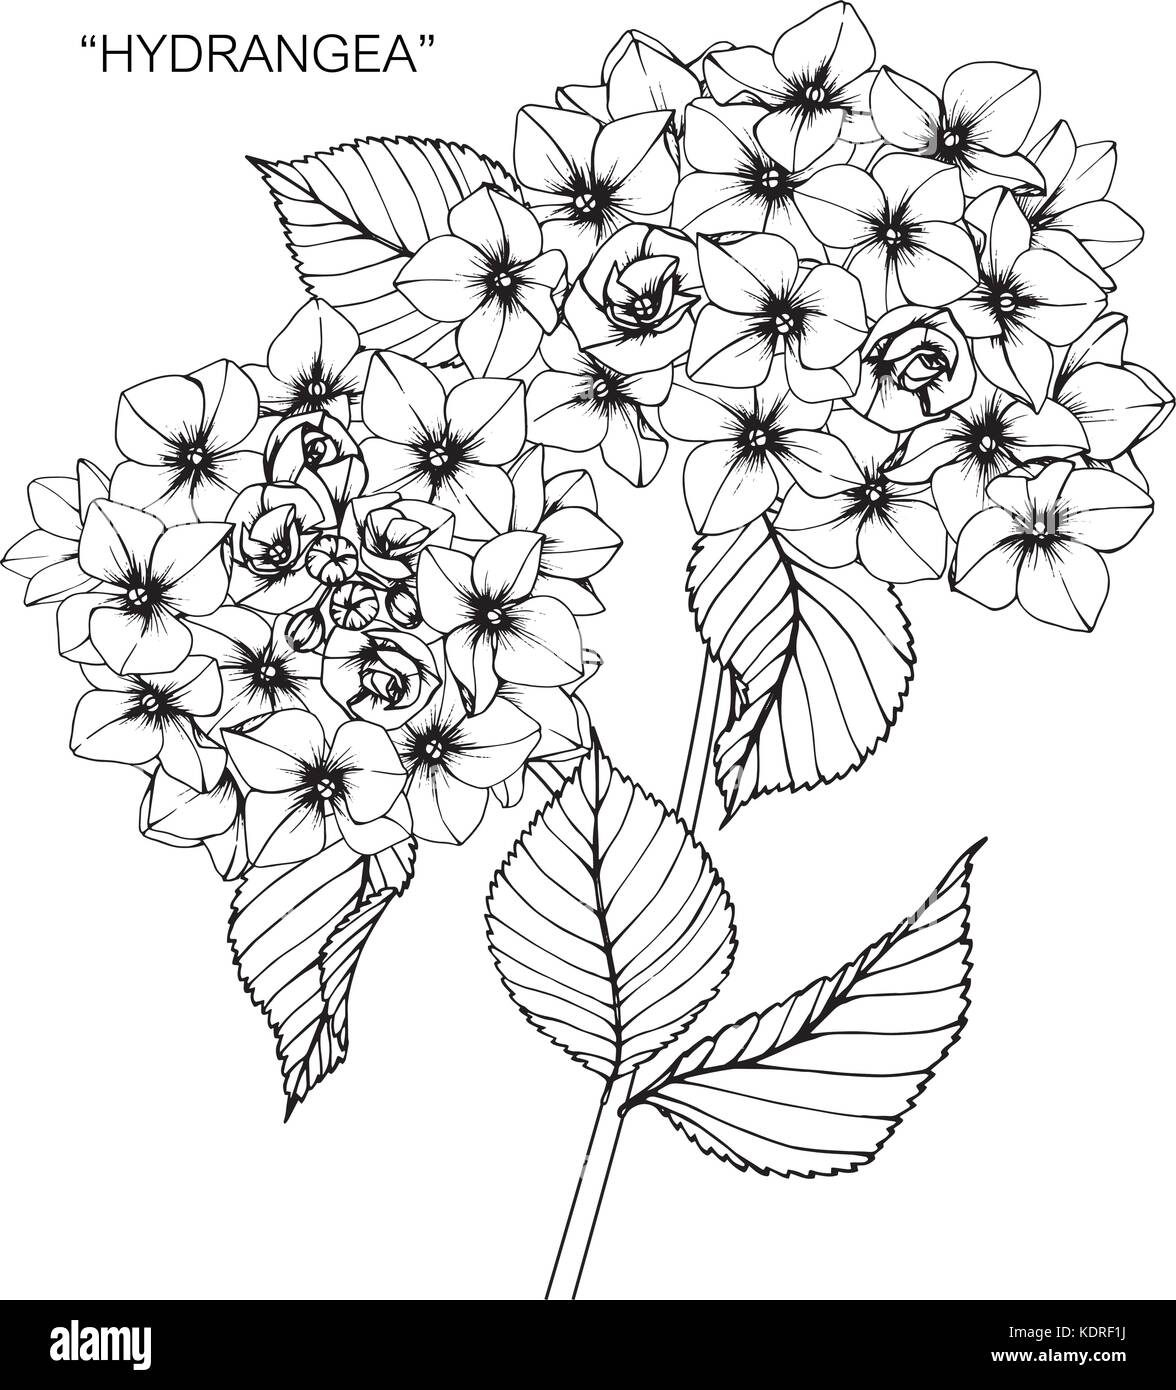 Hydrangea flower drawing illustration black and white with line hydrangea flower drawing illustration black and white with line art mightylinksfo